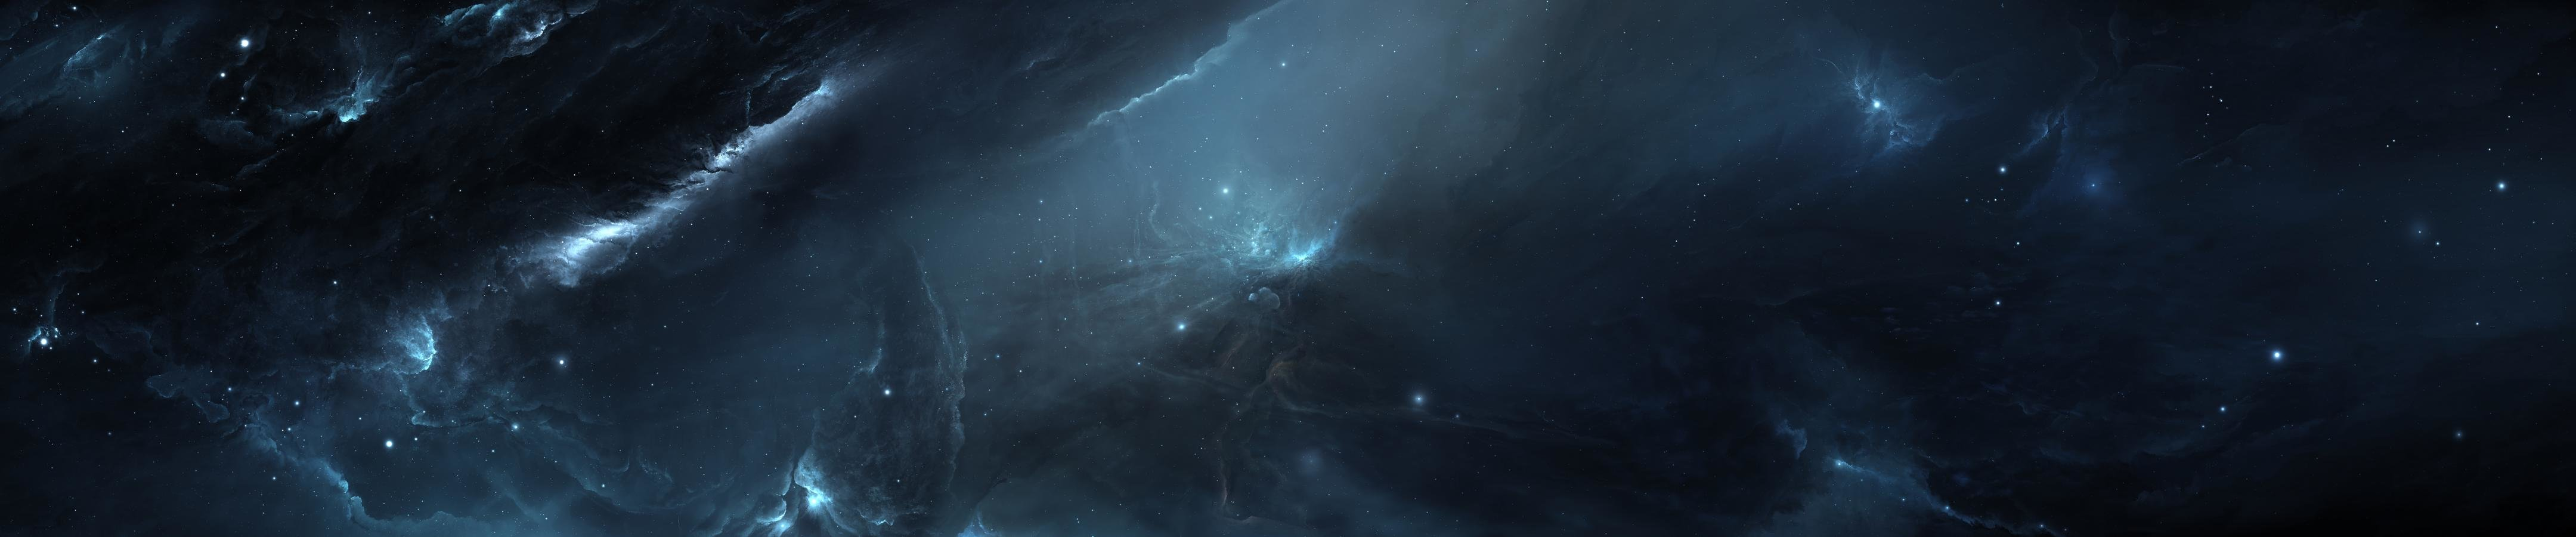 Free download Nebula wallpaper ID:91459 triple monitor 4320x900 for desktop